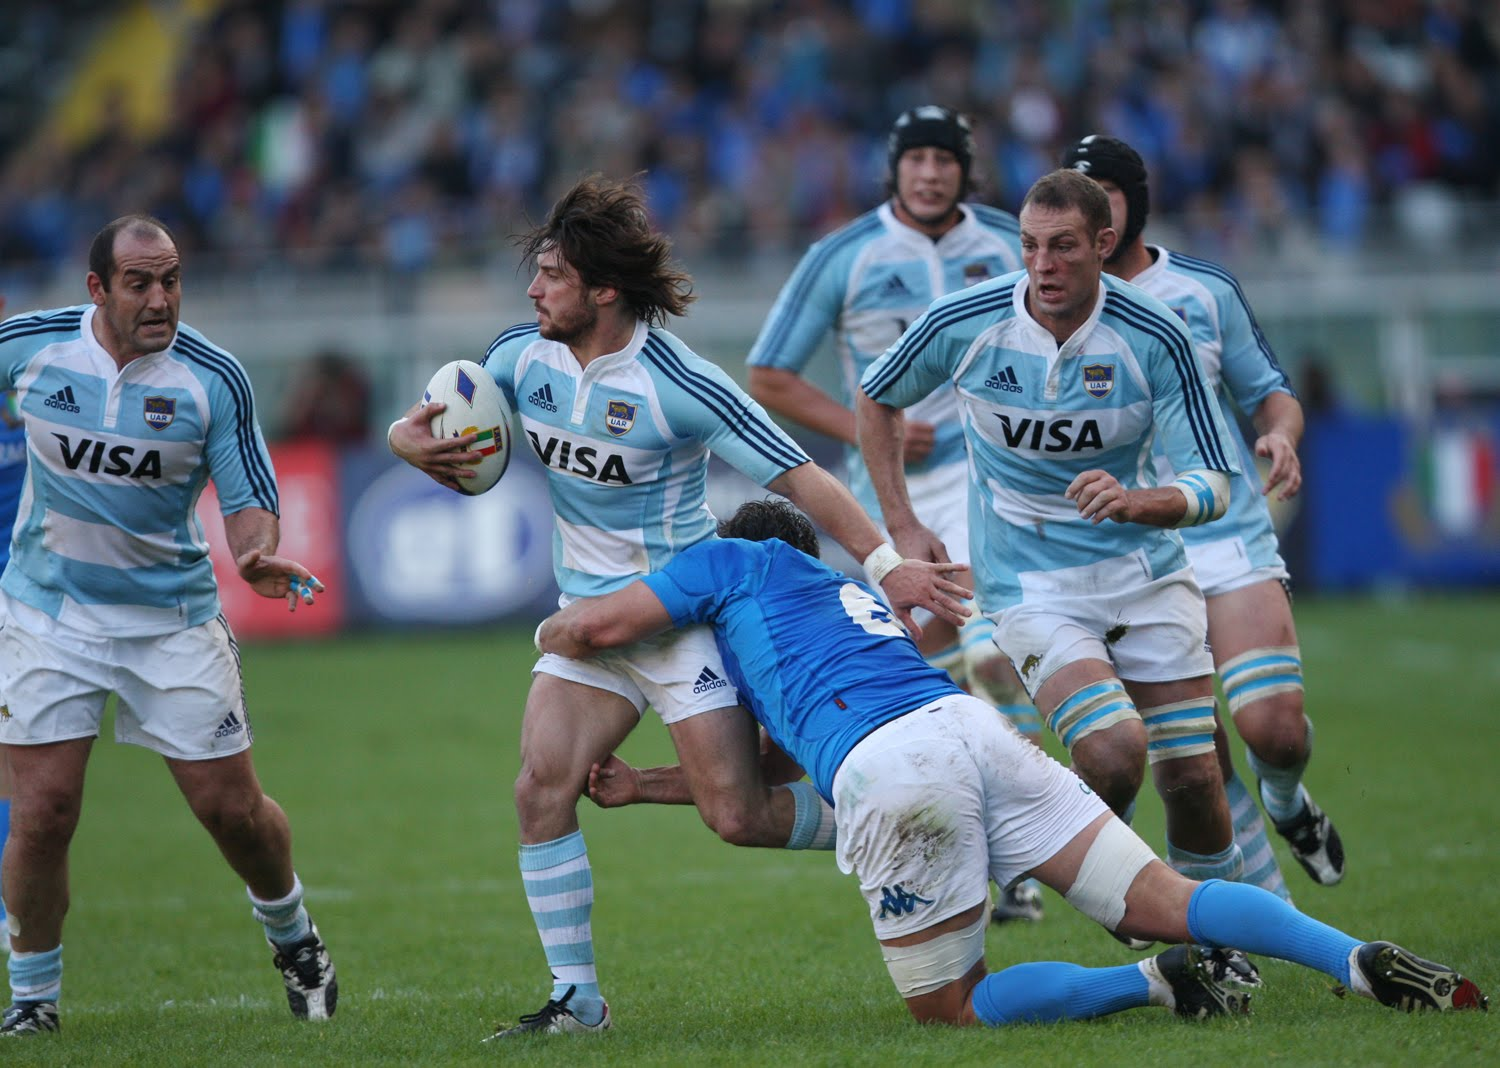 1000+ images about Los Pumas on Pinterest | Pumas, Rugby and Argentina